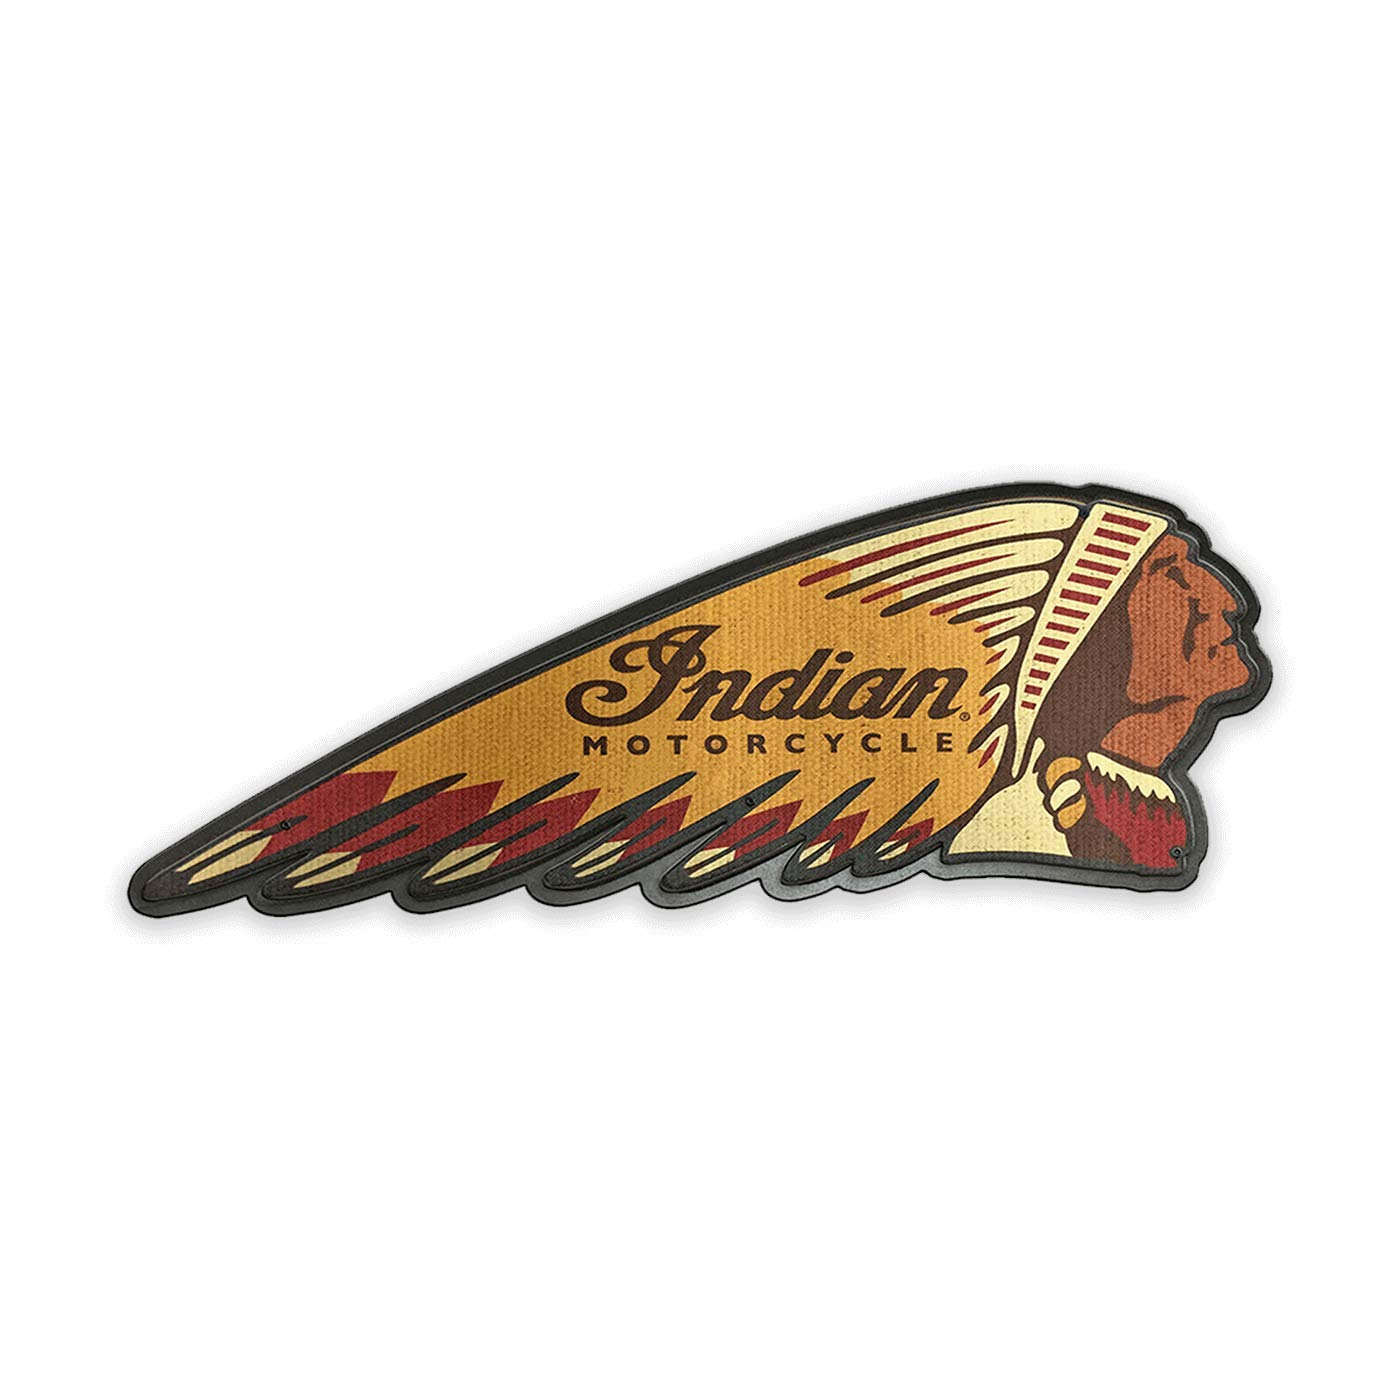 OldWoodSigns Vintage-Style in. Hardboard Decorative Sign - Indian Motorcycle Headdress Patch Sign by Meissenburg Designs